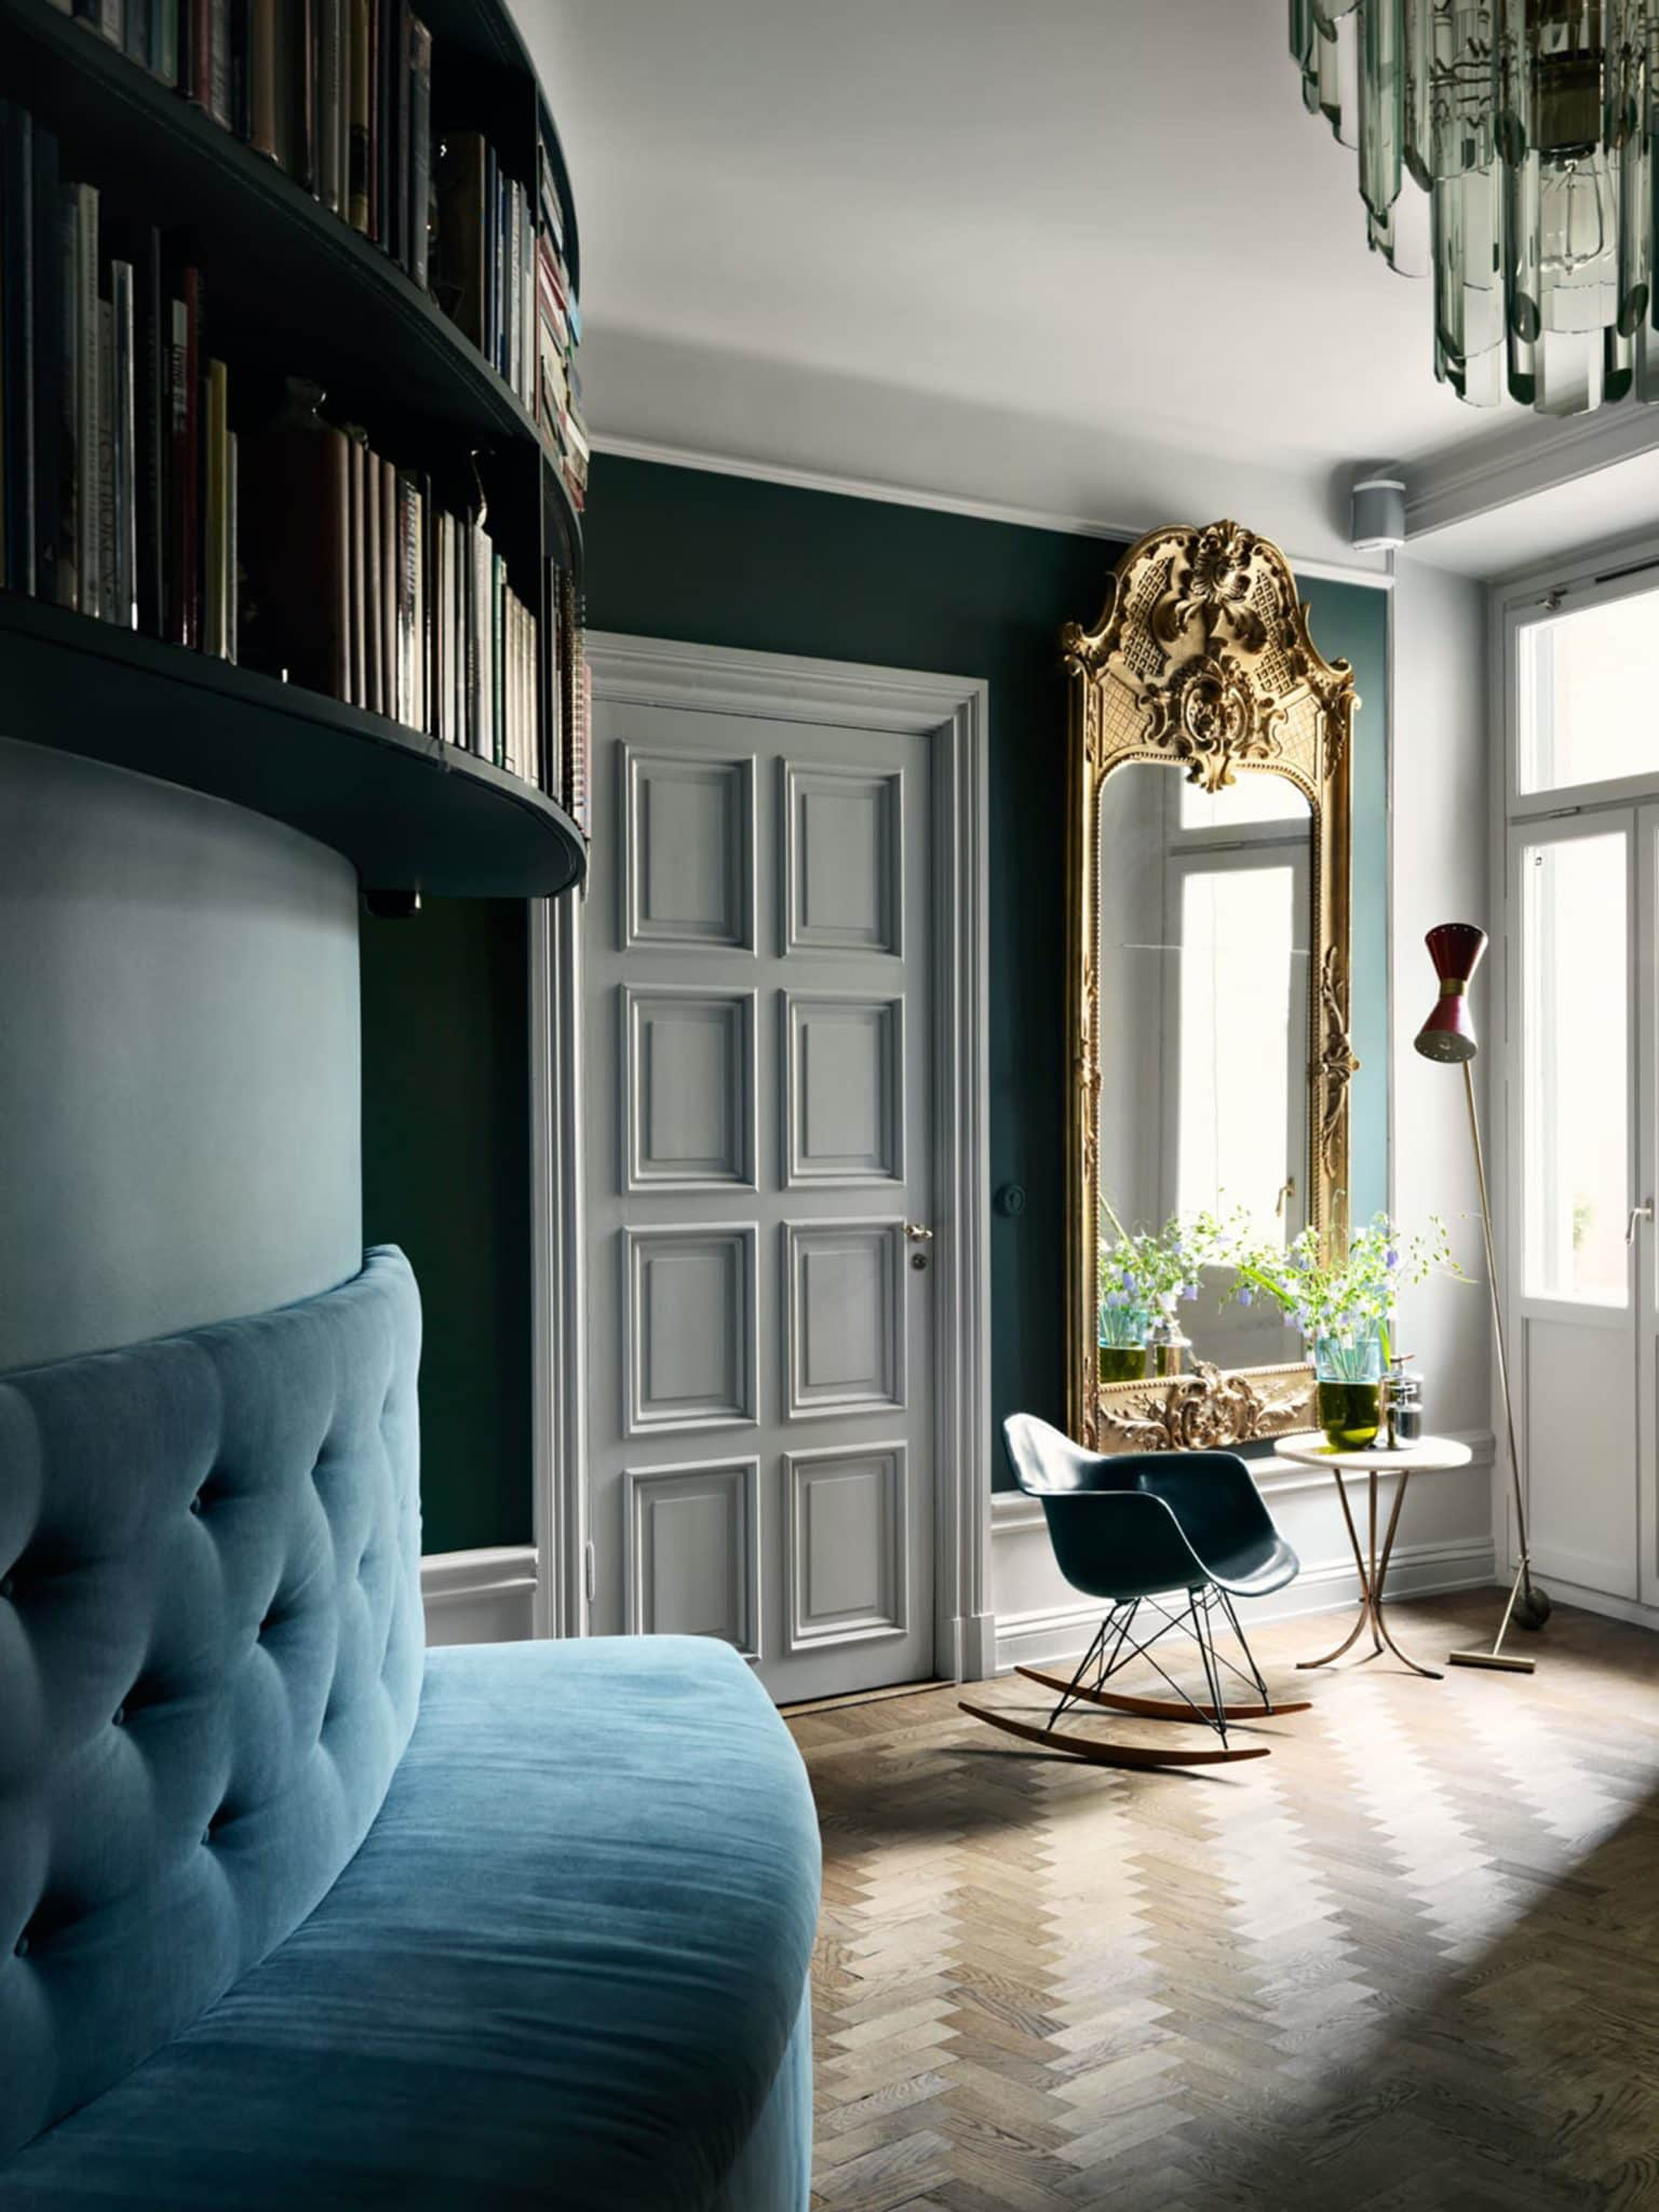 Introducing Modern Victorian And How To Do It In Your Home Emily pertaining to 15 Smart Concepts of How to Makeover Modern Victorian Bedroom